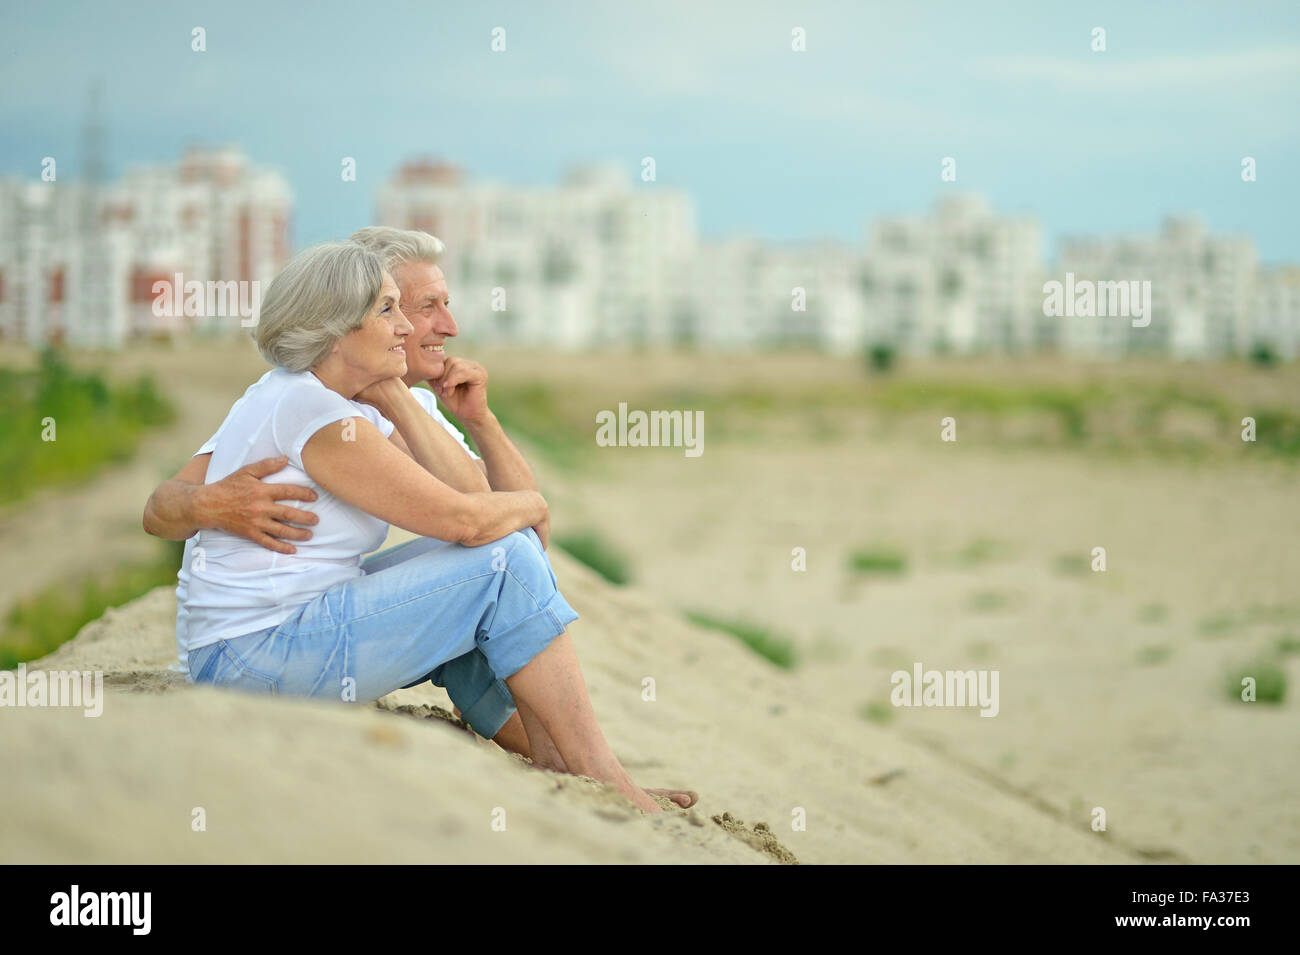 Elderly couple sitting on sand - Stock Image